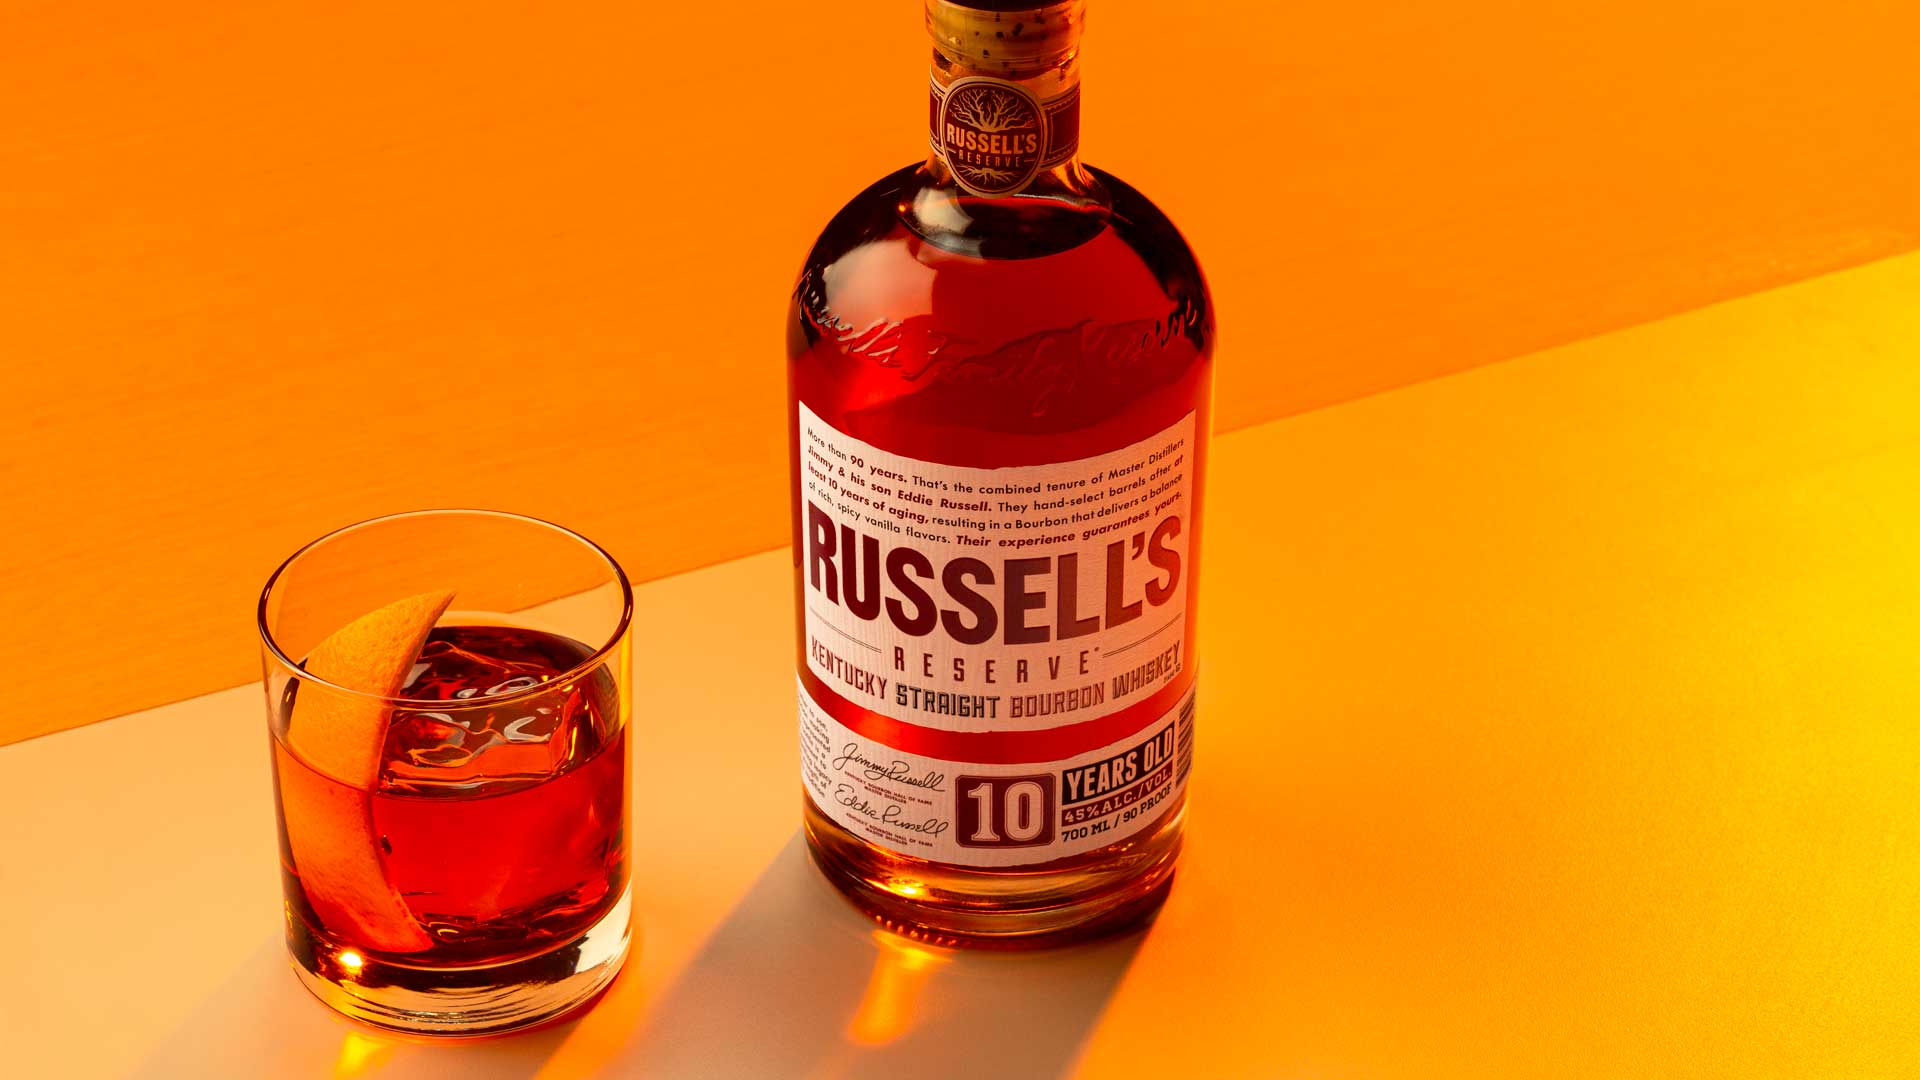 Russell's-Reserve-Wild-Turkey-ITA-Boulevardier-Coqtail-Milano